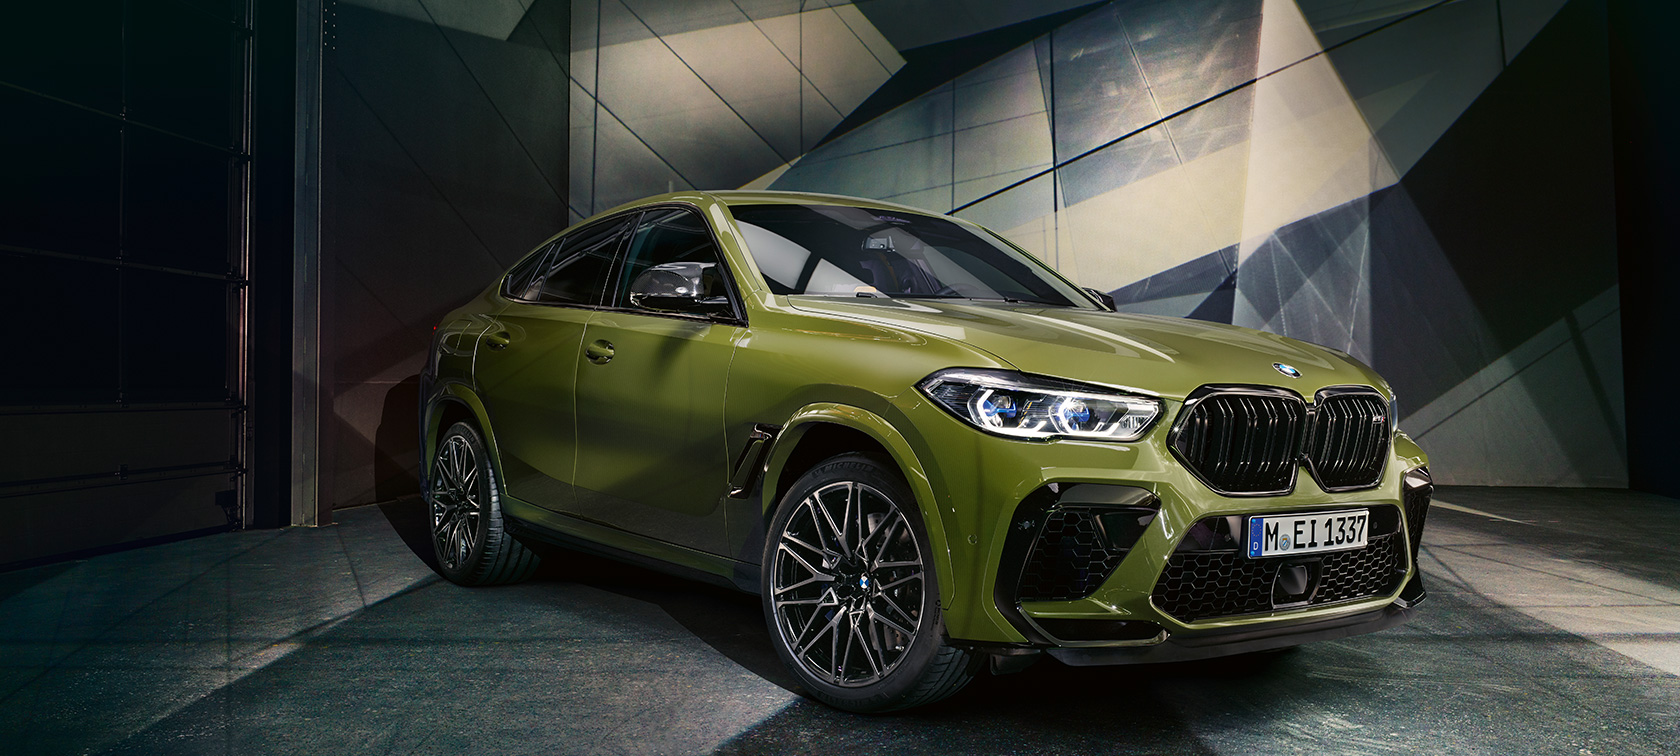 BMW X6 M Competition BMW Individual speciale lak Urban Green F96 2020 zijaanzicht